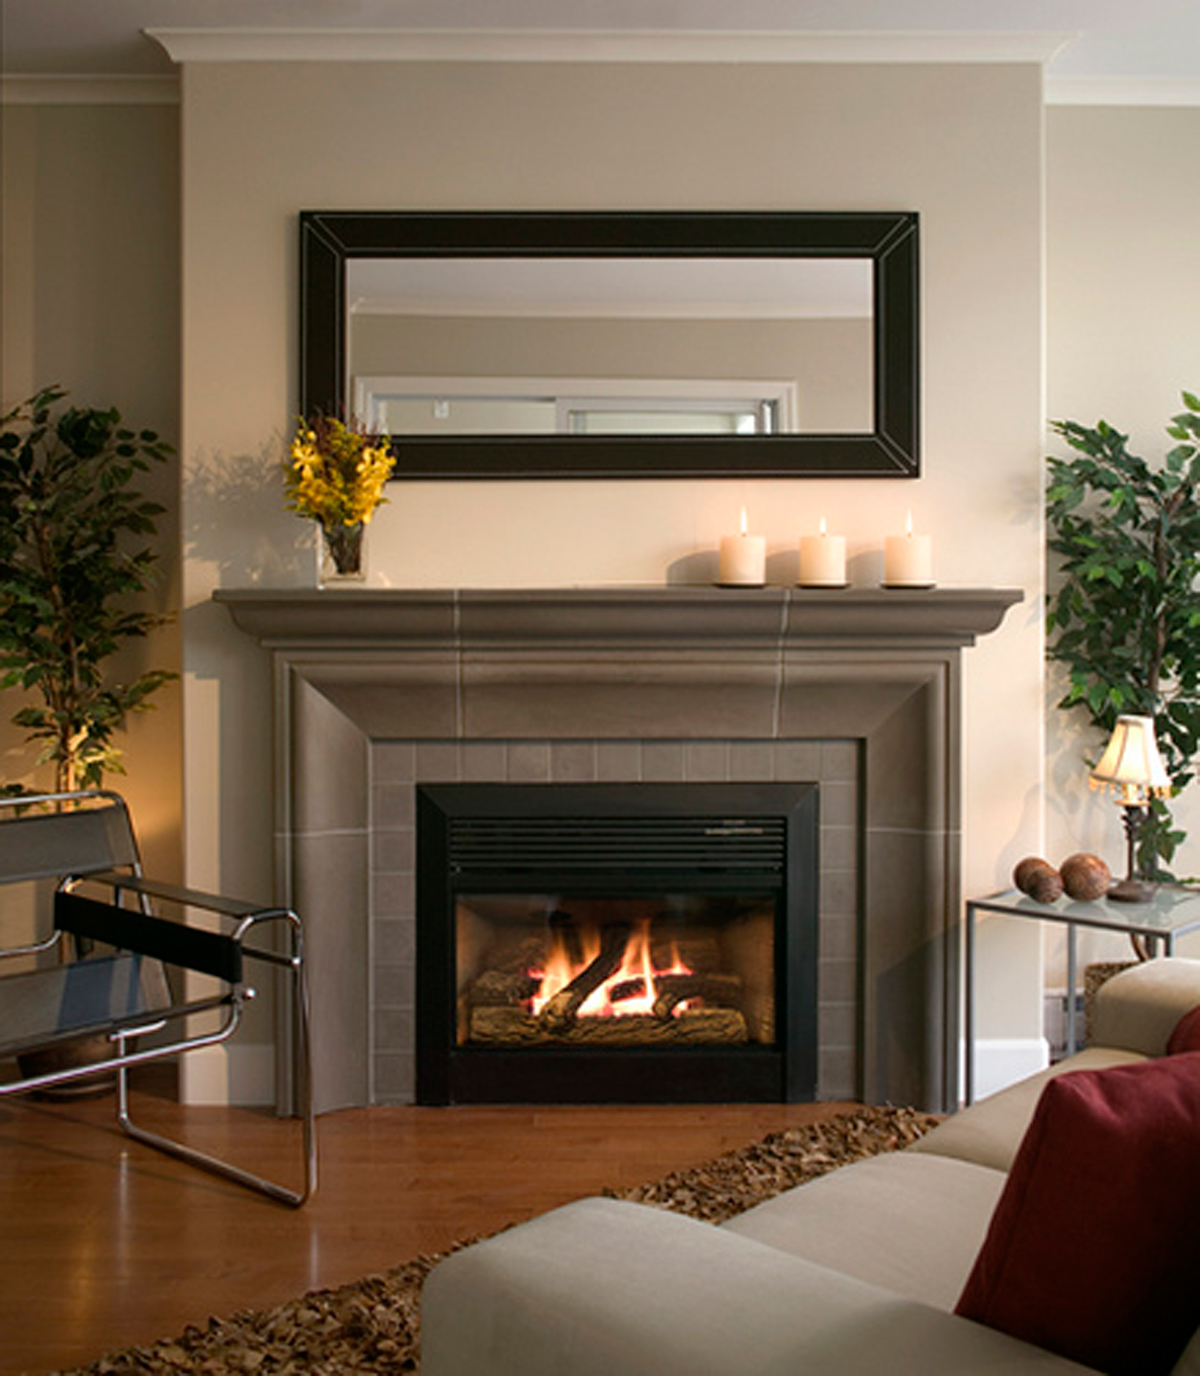 Cool Fireplace Designs - HomesFeed